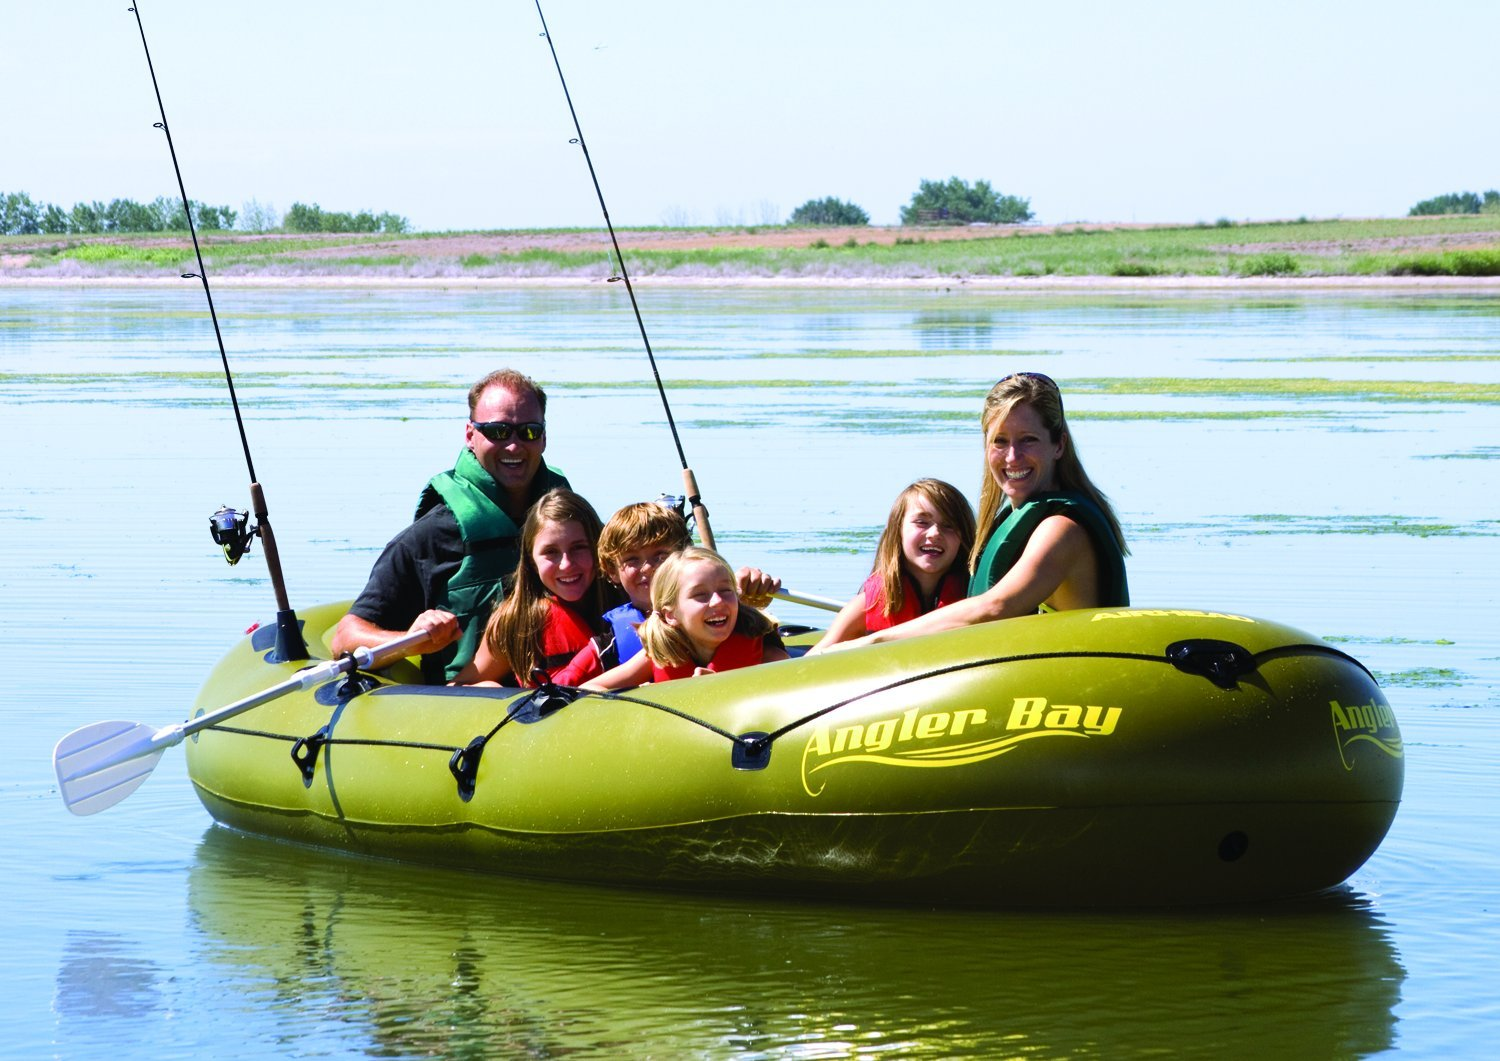 AIRHEAD ANGLER BAY Inflatable Boat, 6 person by Airhead